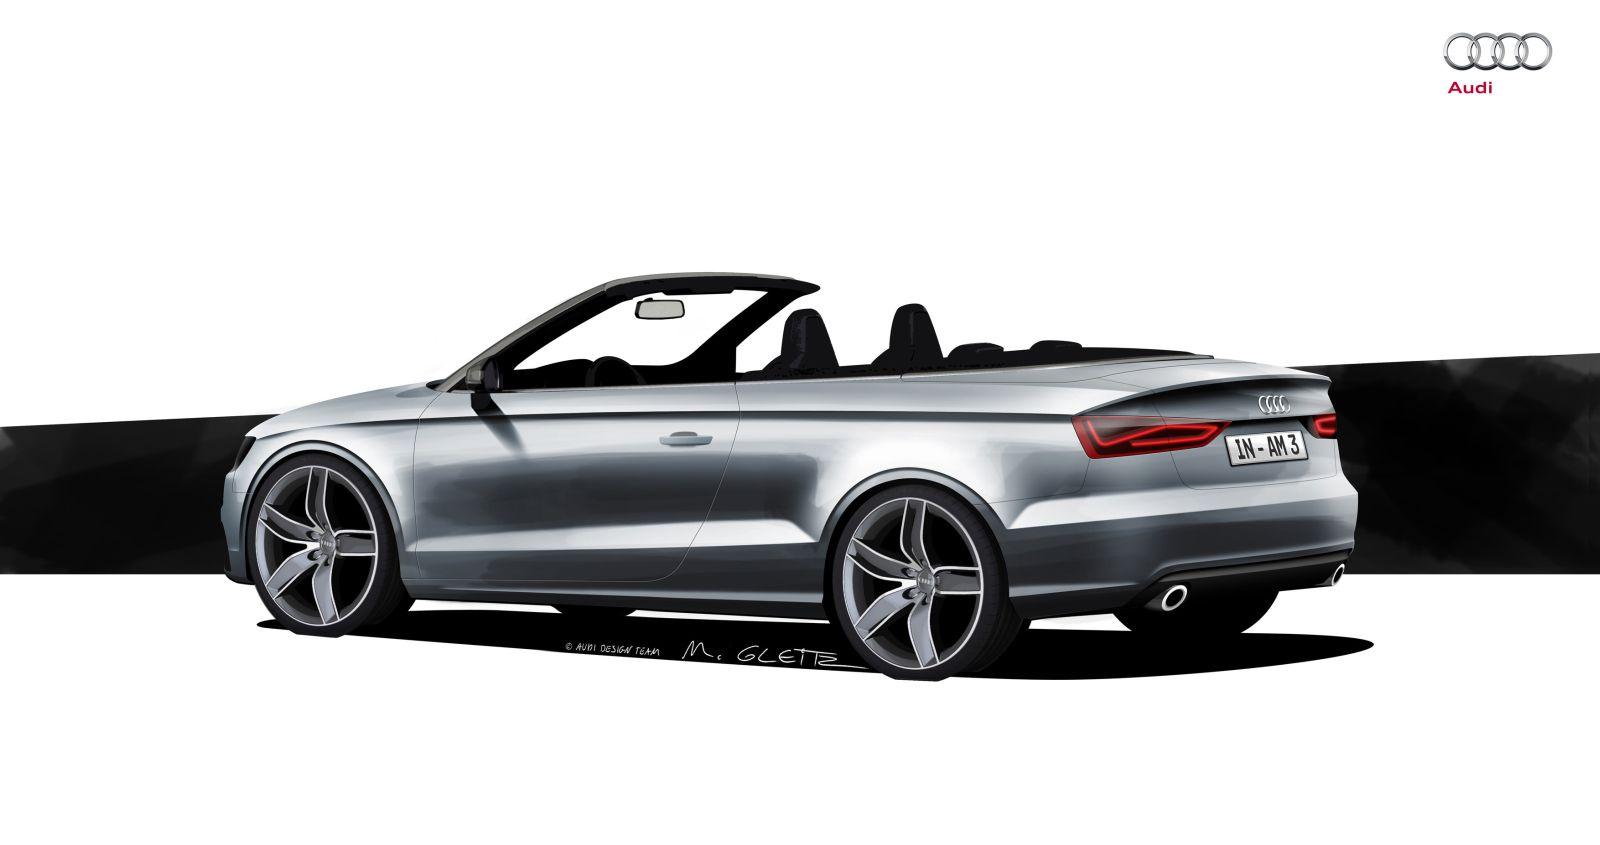 2015 audi a3 cabriolet convertible car interior design. Black Bedroom Furniture Sets. Home Design Ideas